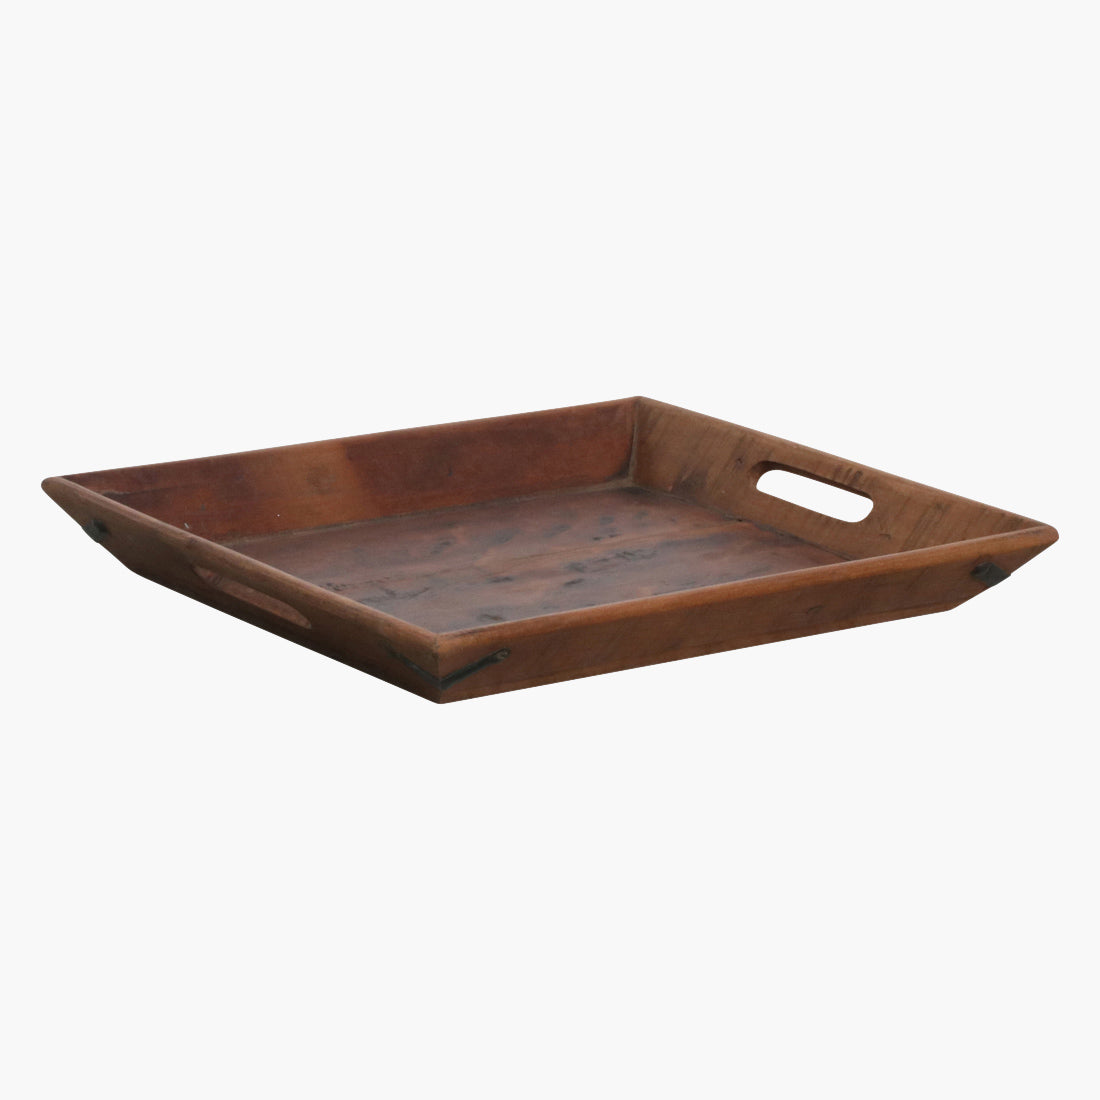 Factory serving tray small